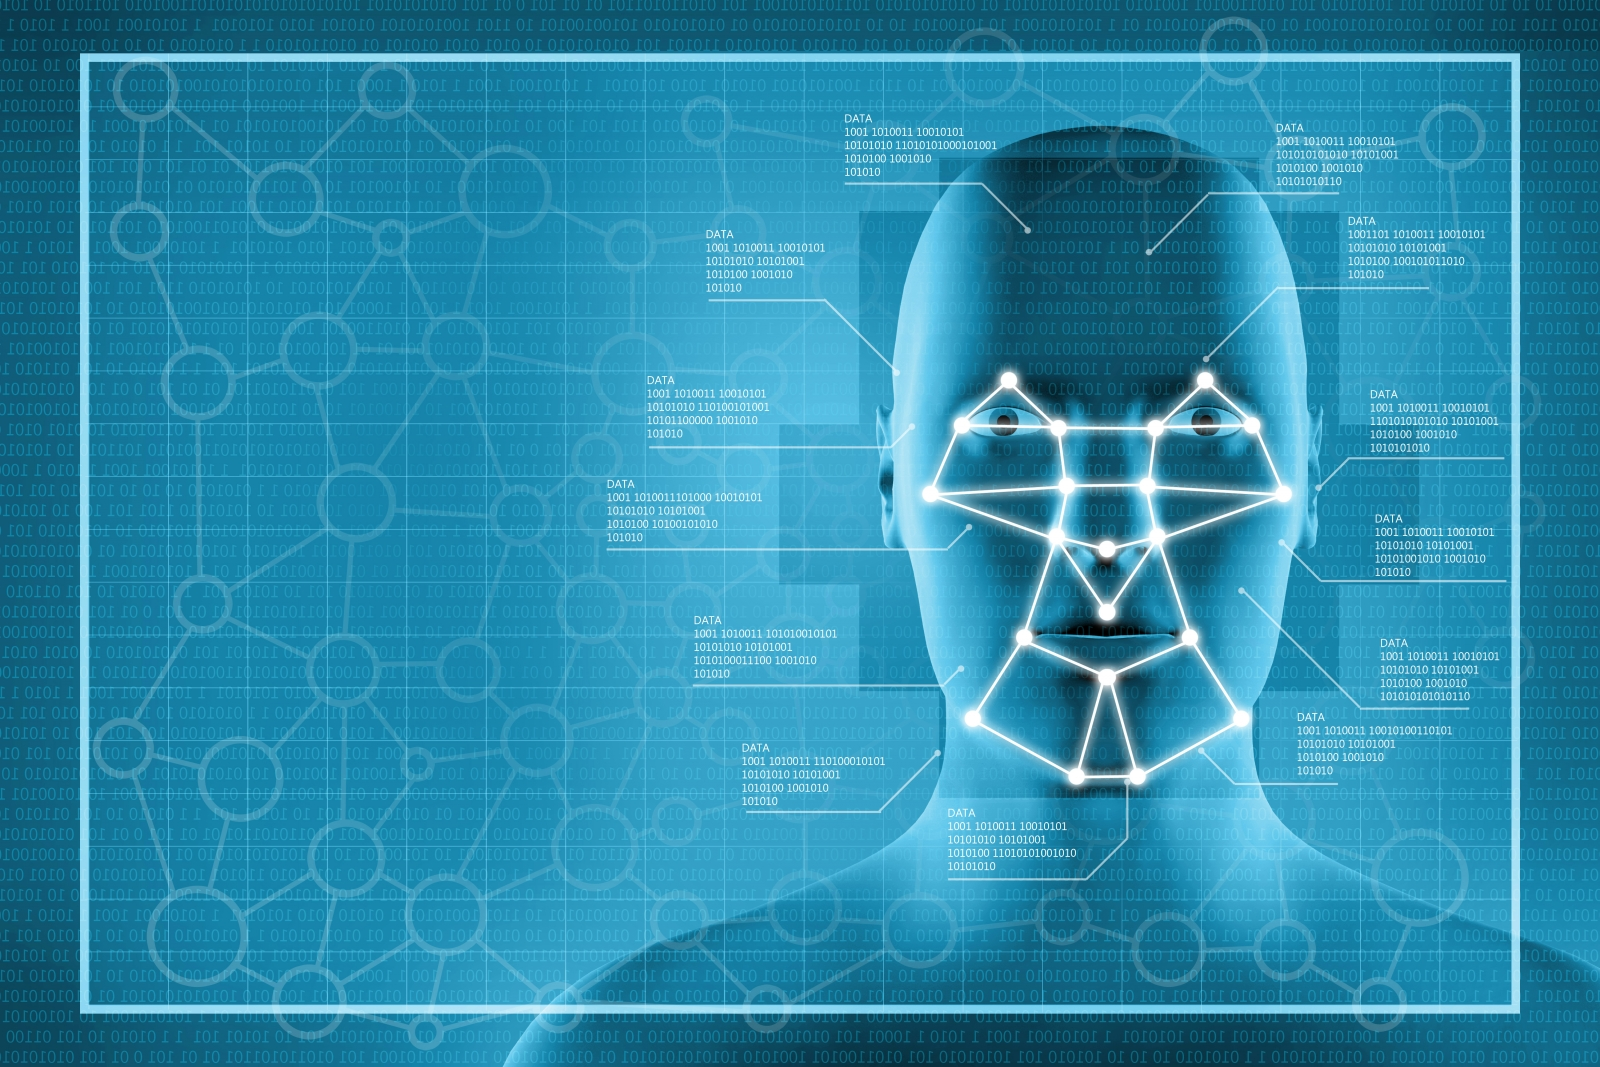 New Zealand passport facial recognition software tells Asian descent applicant to open eyes